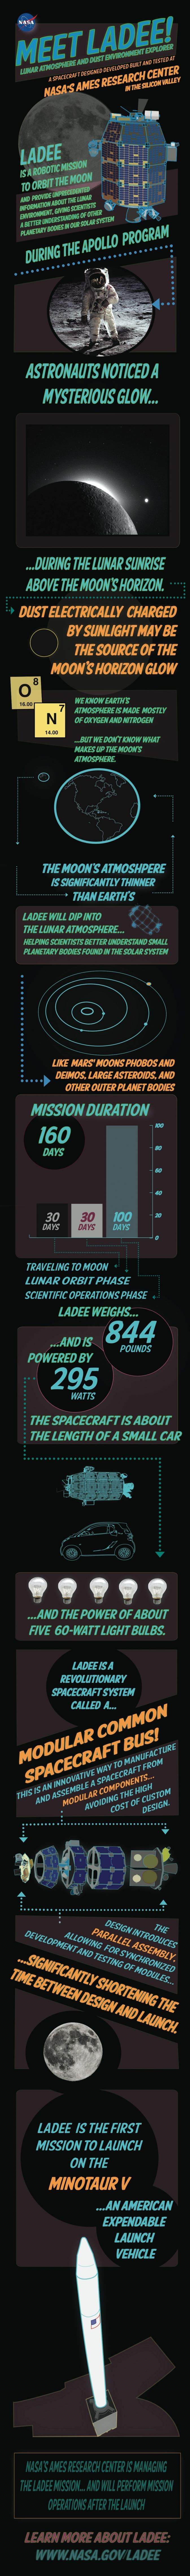 Informational graphic about NASA's LADEE mission.